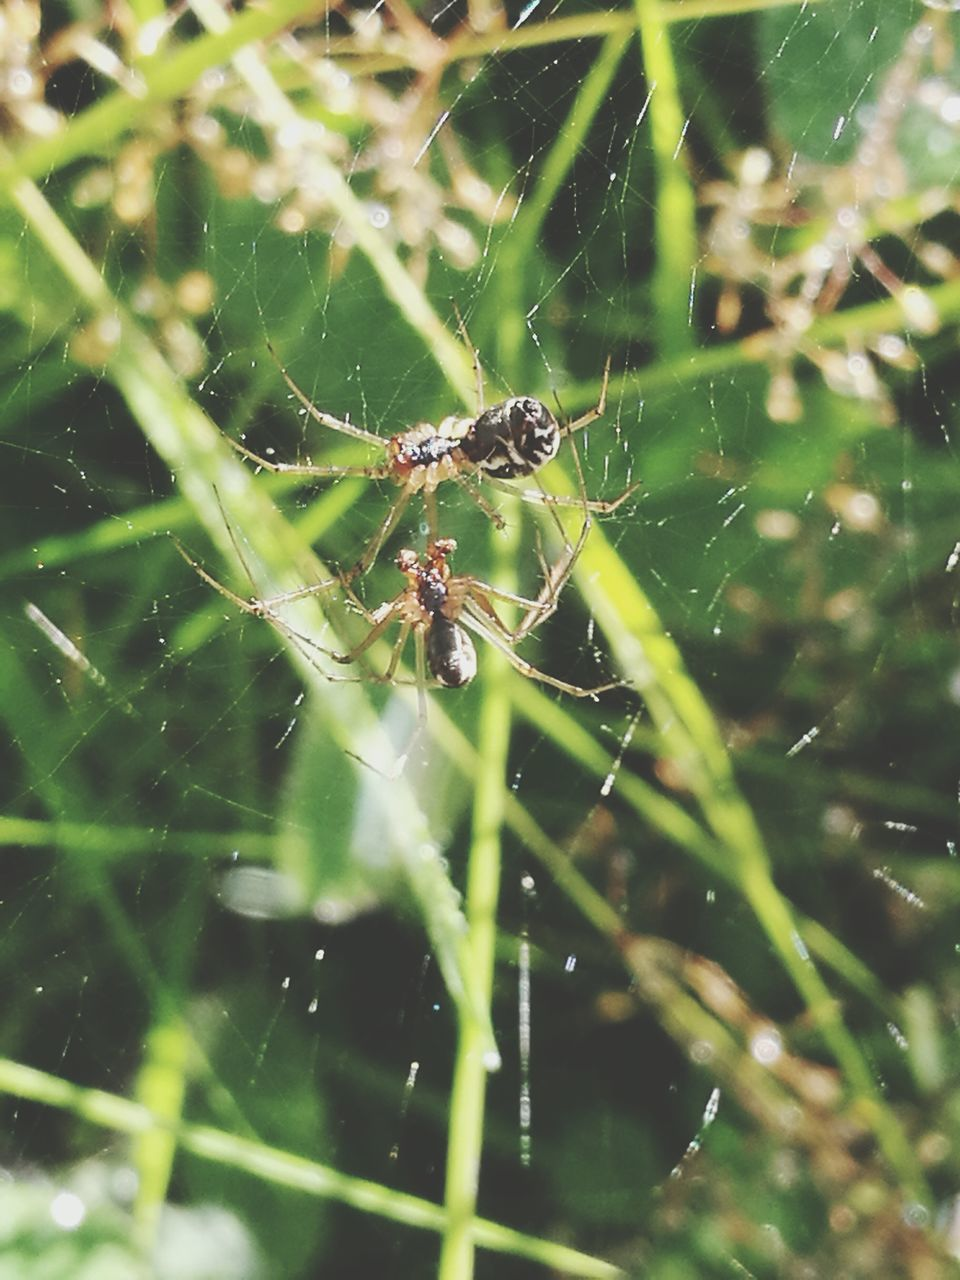 spider, spider web, one animal, animals in the wild, animal themes, insect, web, survival, close-up, focus on foreground, nature, outdoors, day, animal wildlife, no people, full length, fragility